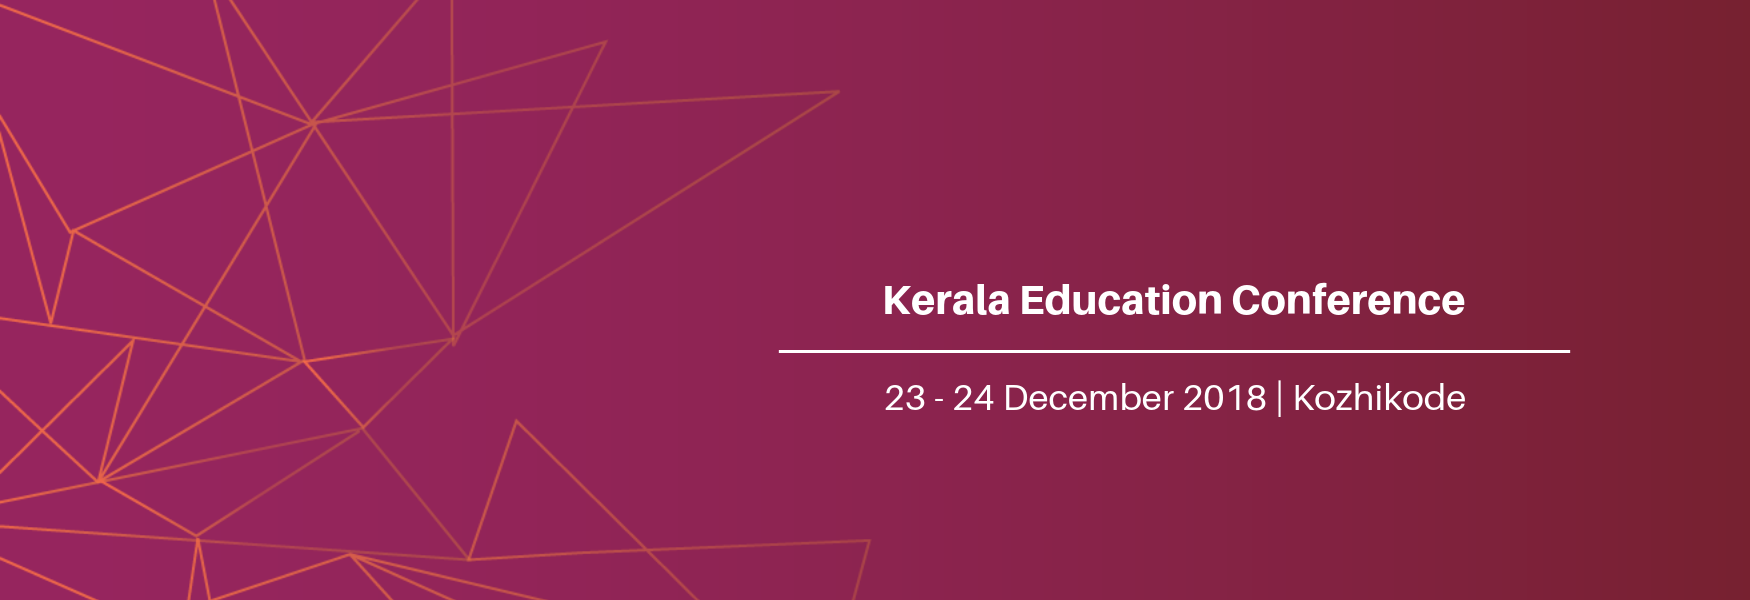 Kerala Education Conference